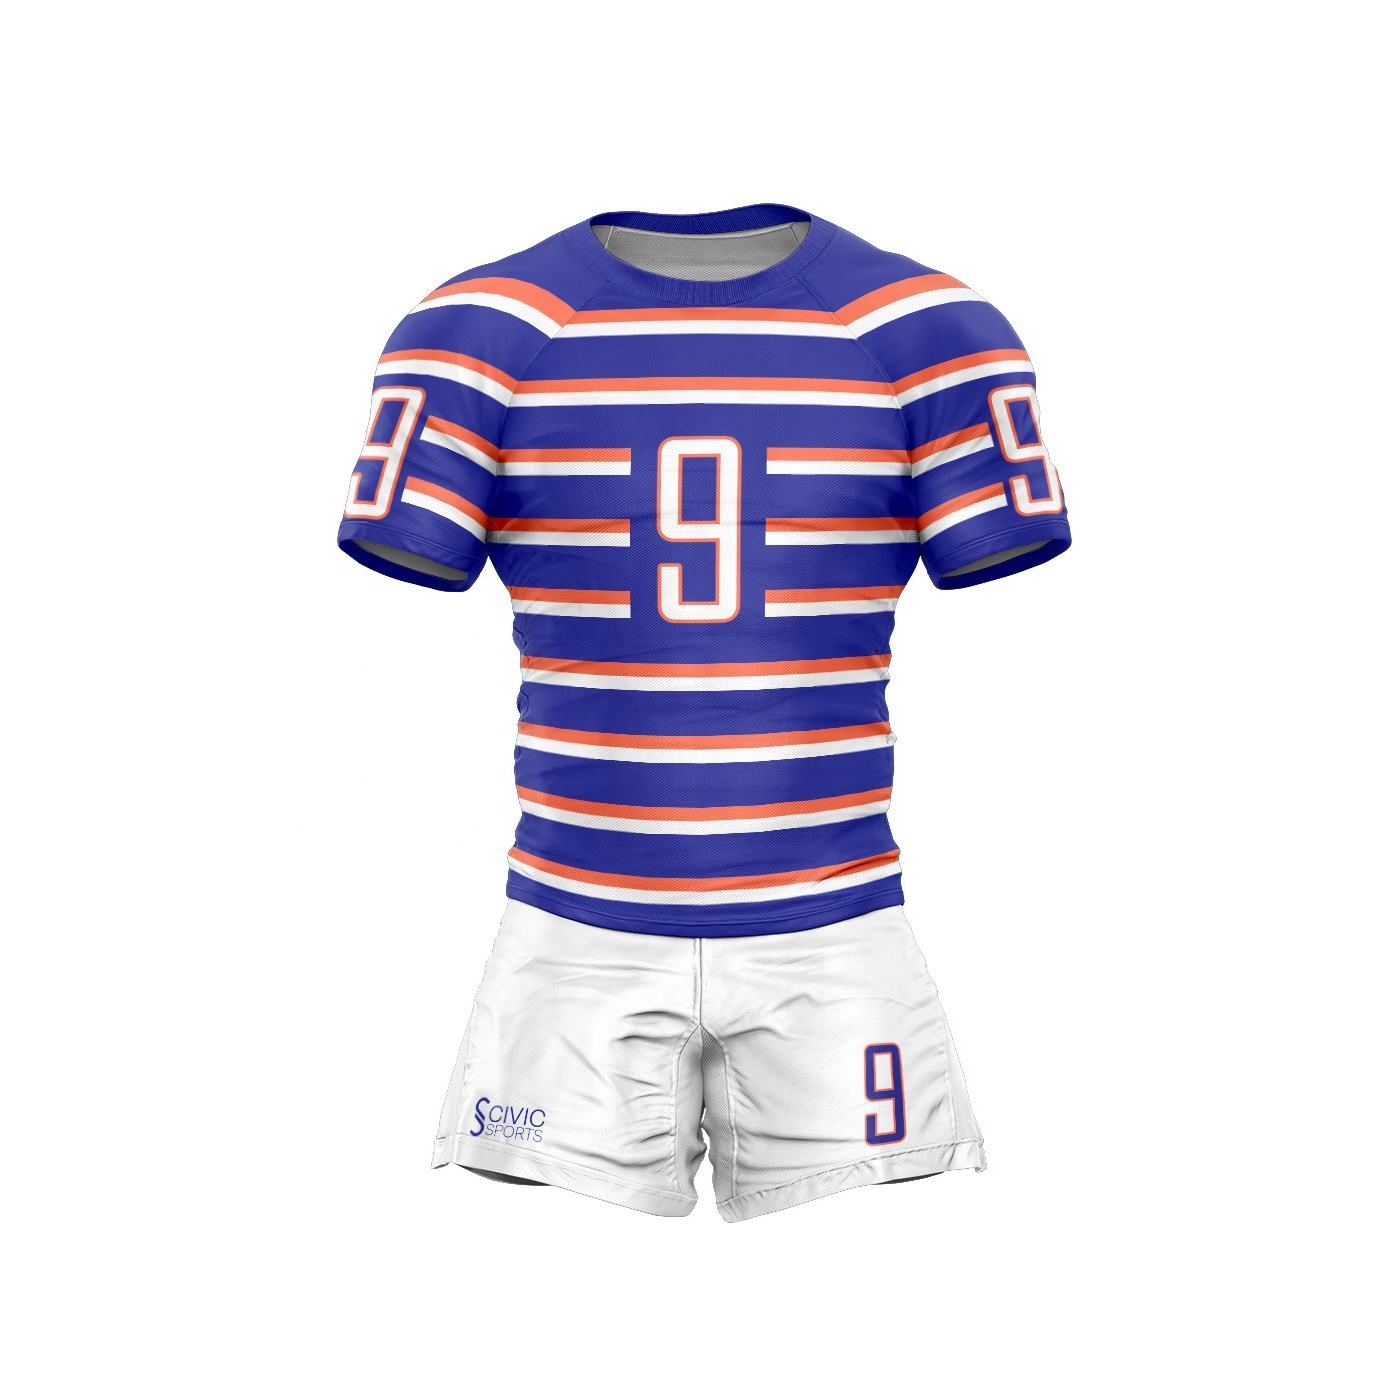 wholesale high quality rugby league jersey professional sublimation custom rugby league jersey rugby uniform